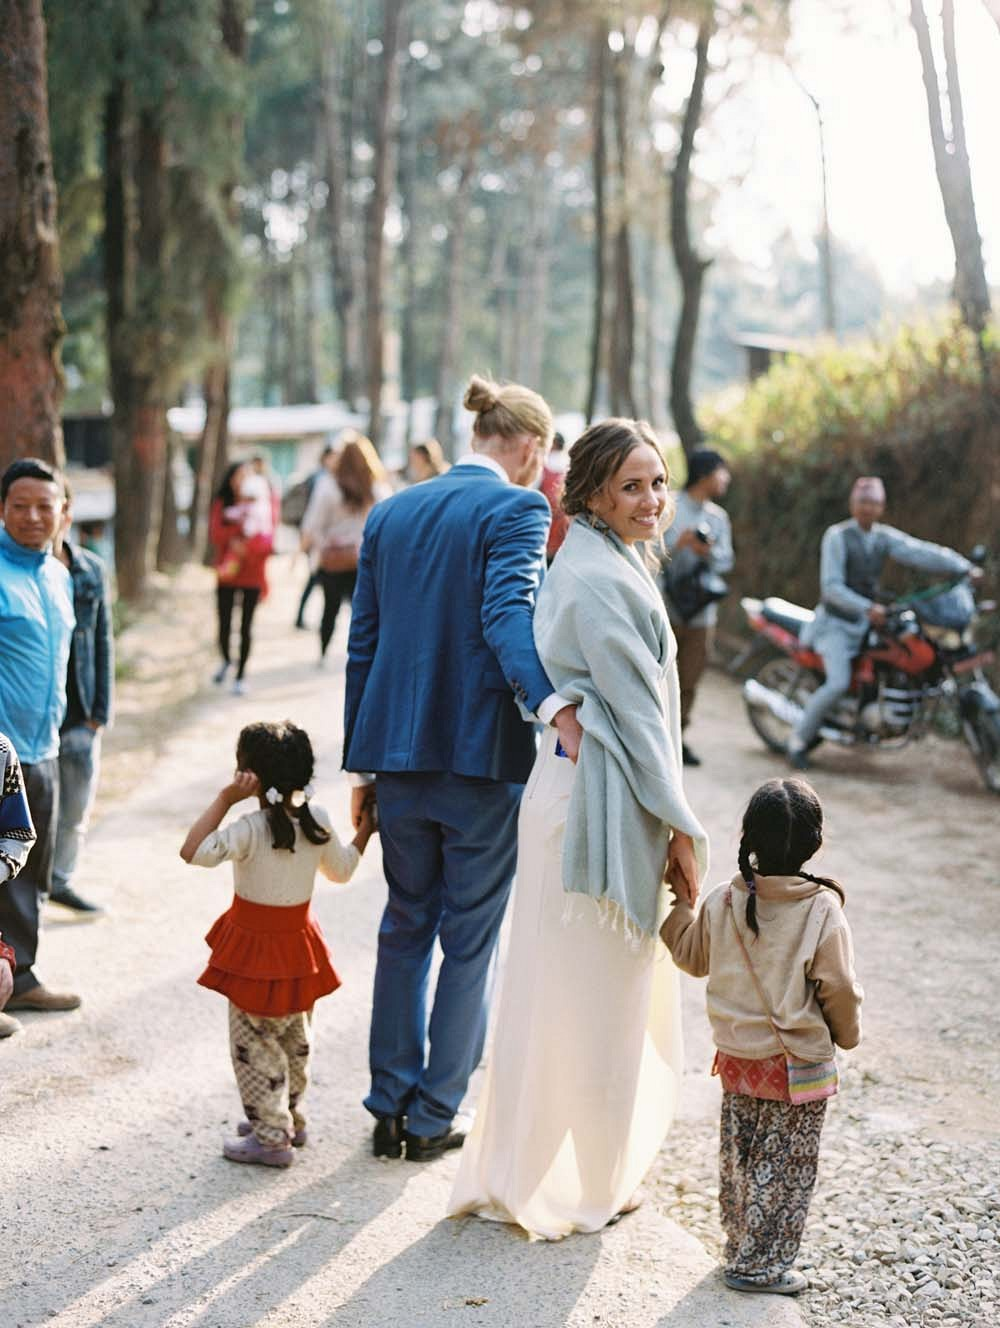 Real Wedding in Nepal immersed in the culture